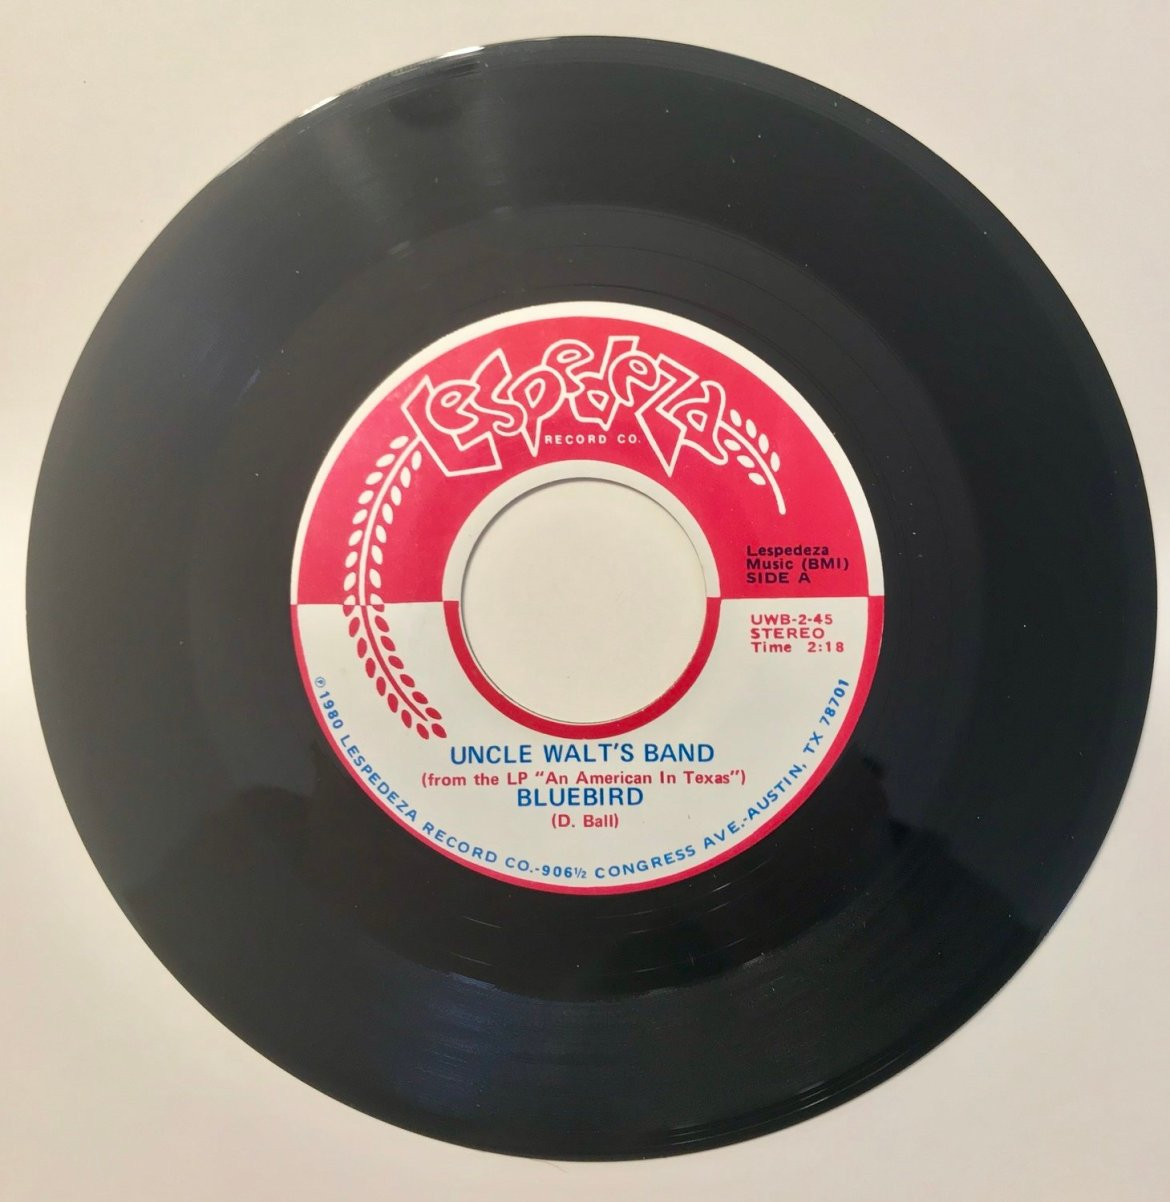 Original 45: Bluebird / Too Far To Fall